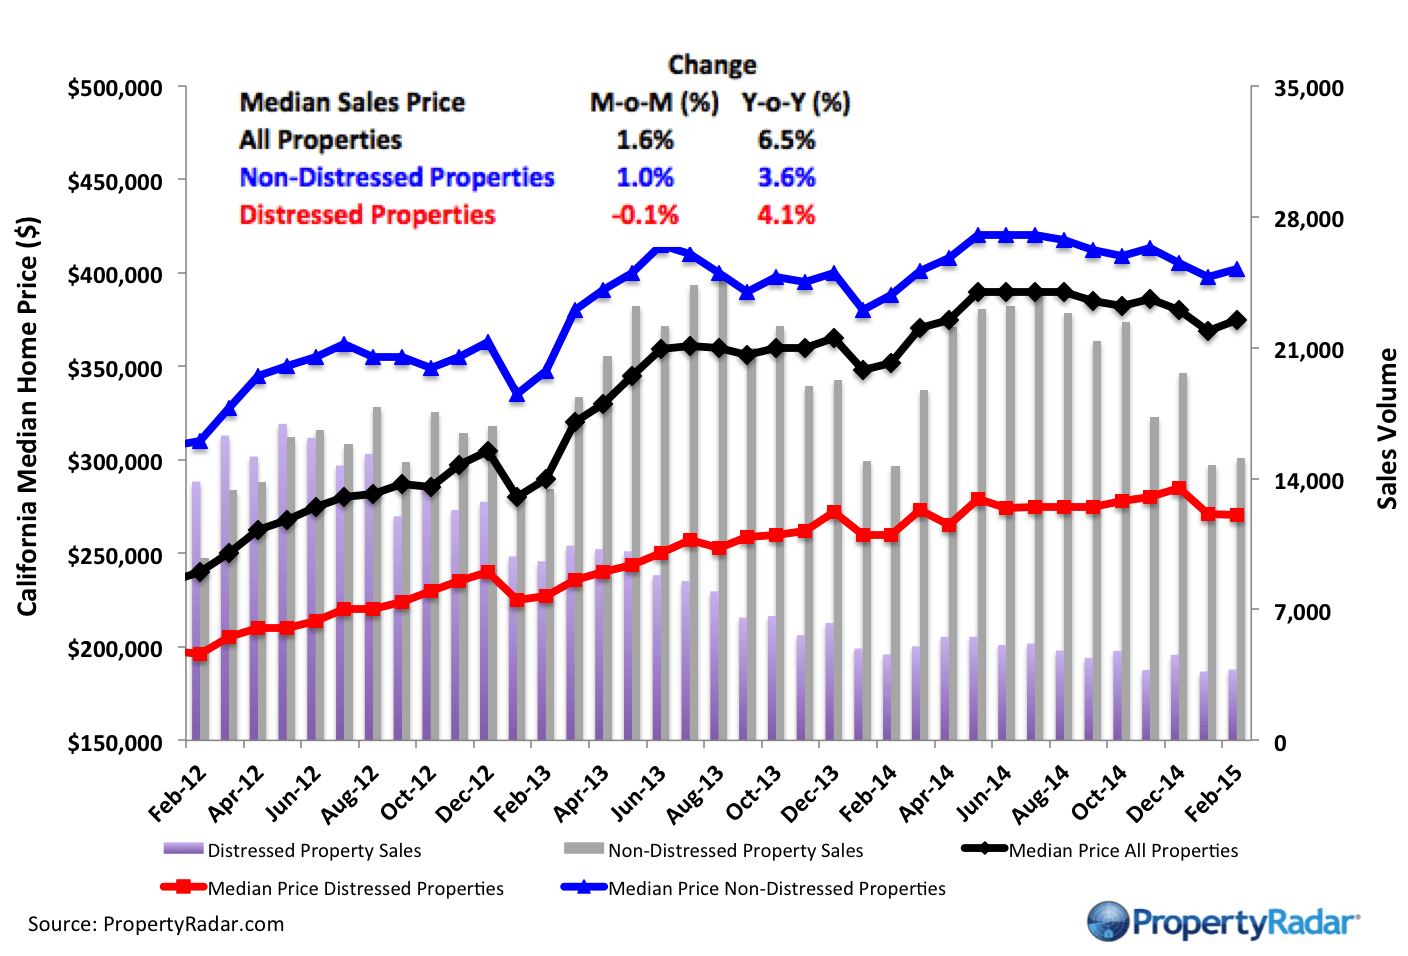 Real Property Report - California, February 2015: February Sales Up 3.3 Percent From January. Median Price Gains 1.6 Percent. Rise in February Home Sales